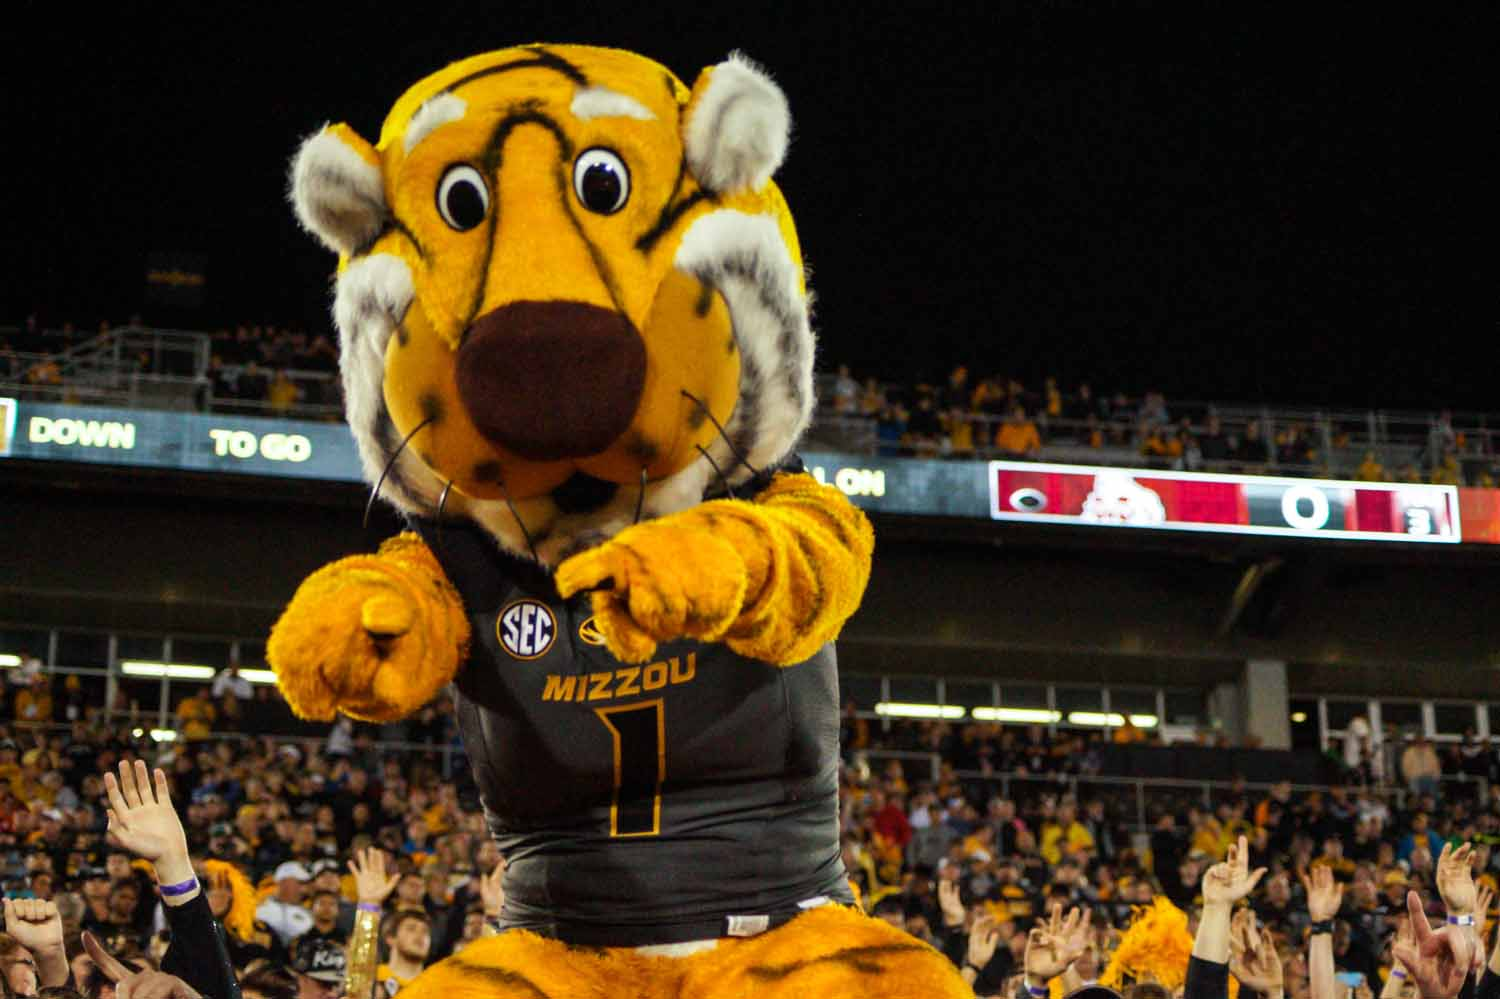 Truman the Tiger waves to cheering fans before kickoff. Photo by Allison Collins.